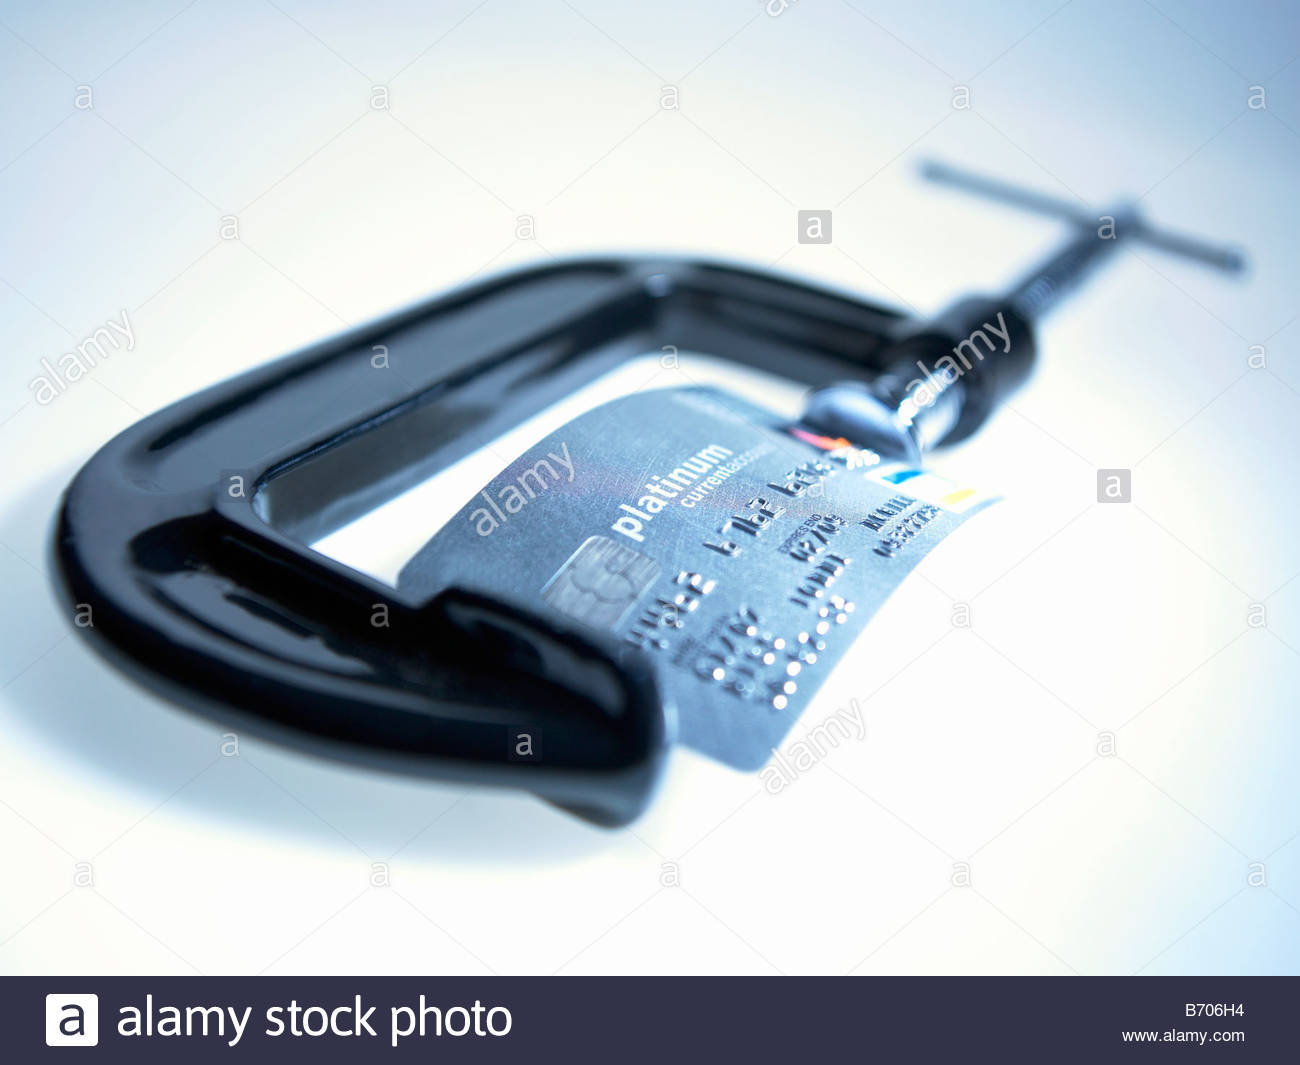 Credit card being squeezed in vice - Stock Image